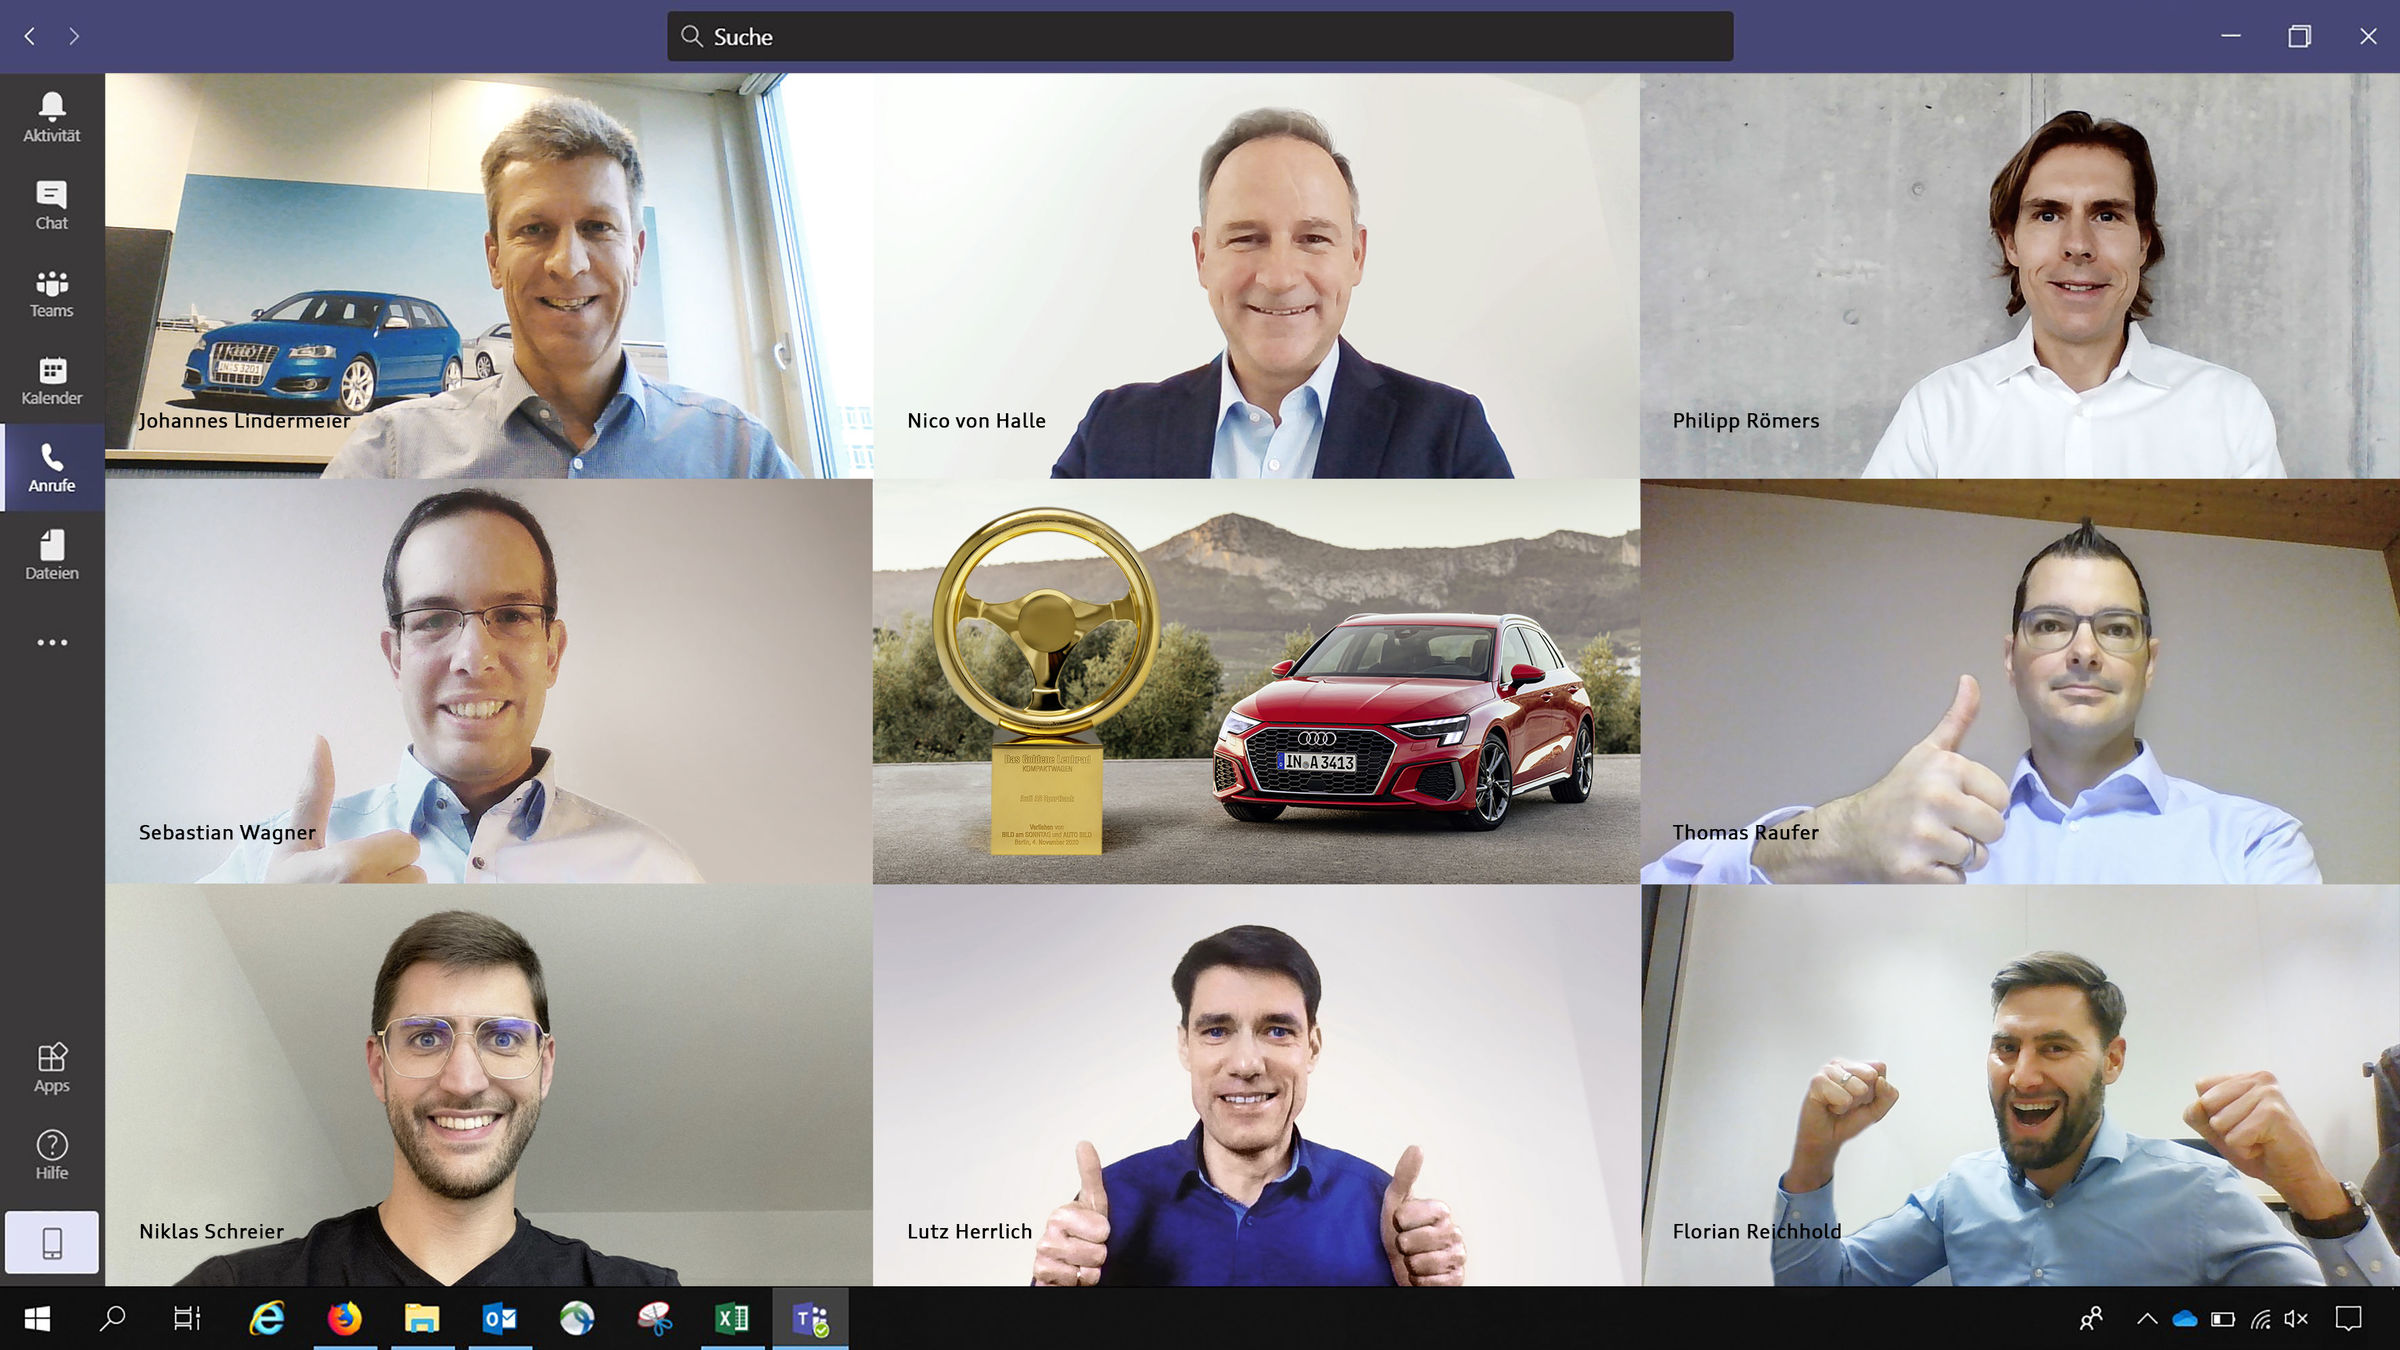 """Success for Audi: The A3 Sportback wins the """"Golden Steering Wheel"""" in the compact class - Image 2"""